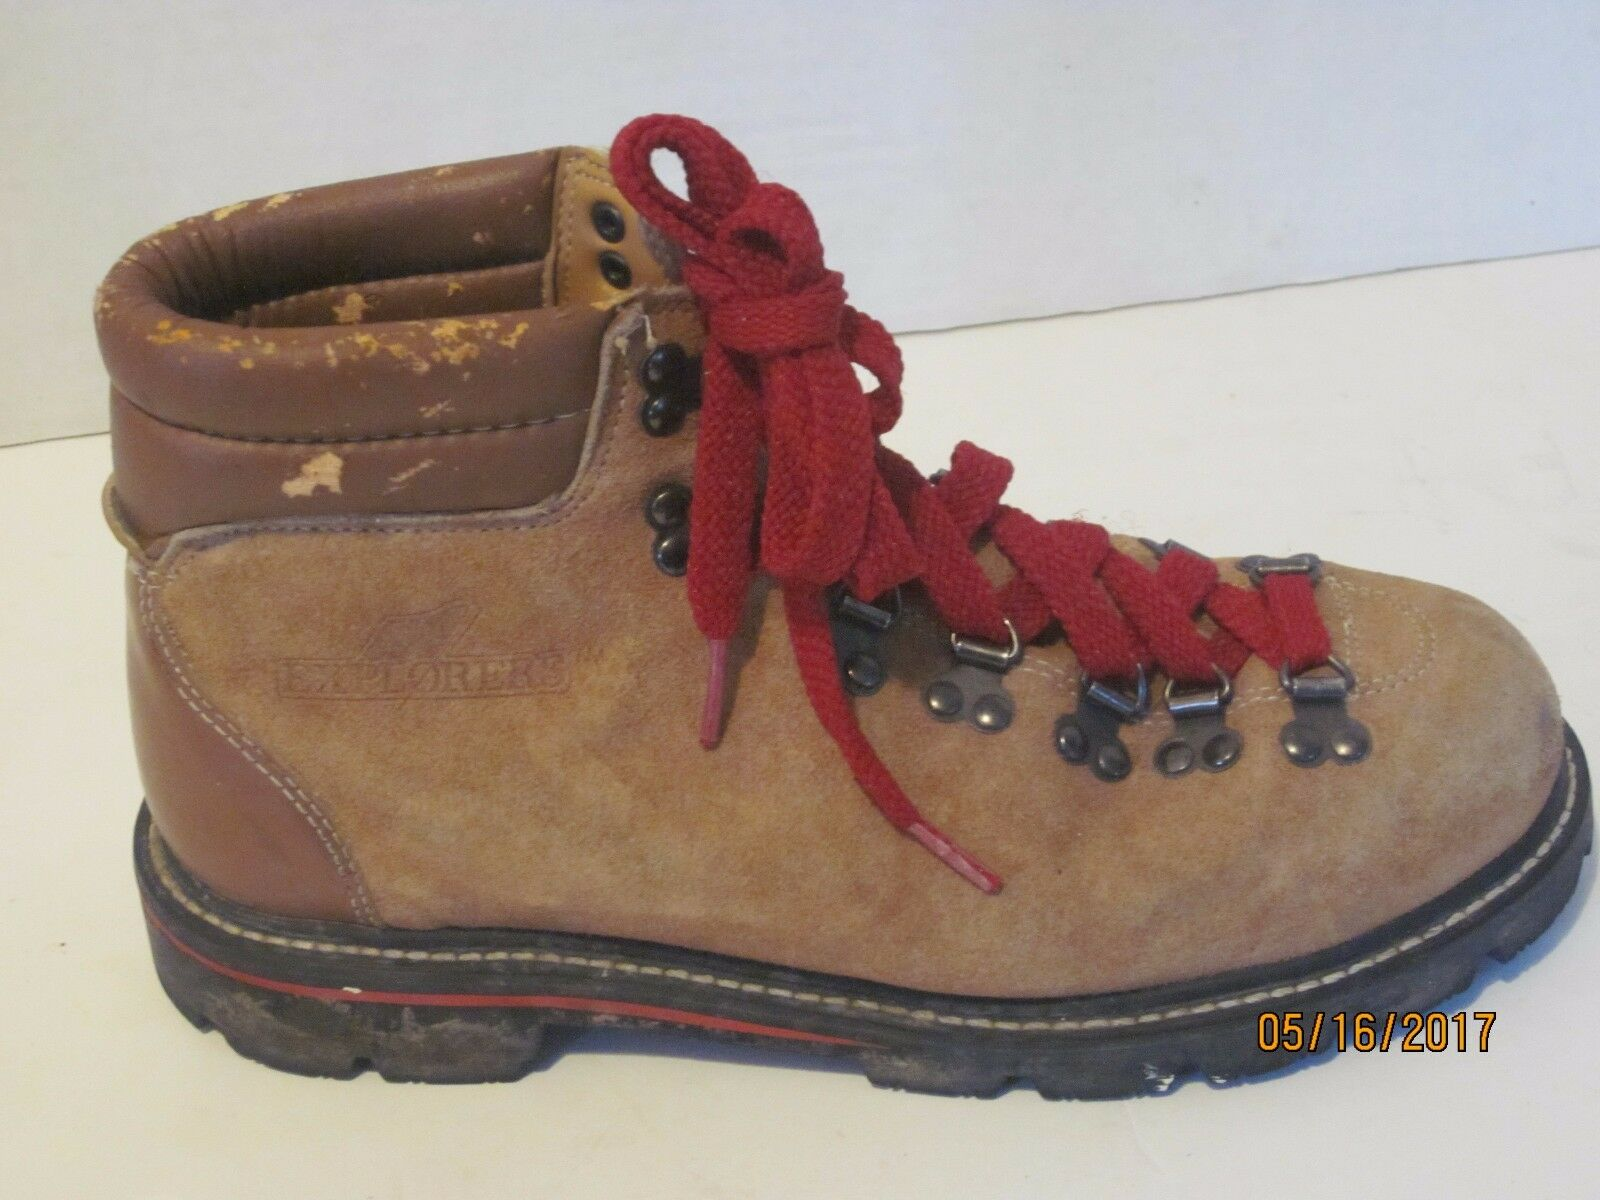 Explorers Vintage Men's Hiking  Mountaineering Boots Size 8.5 s2